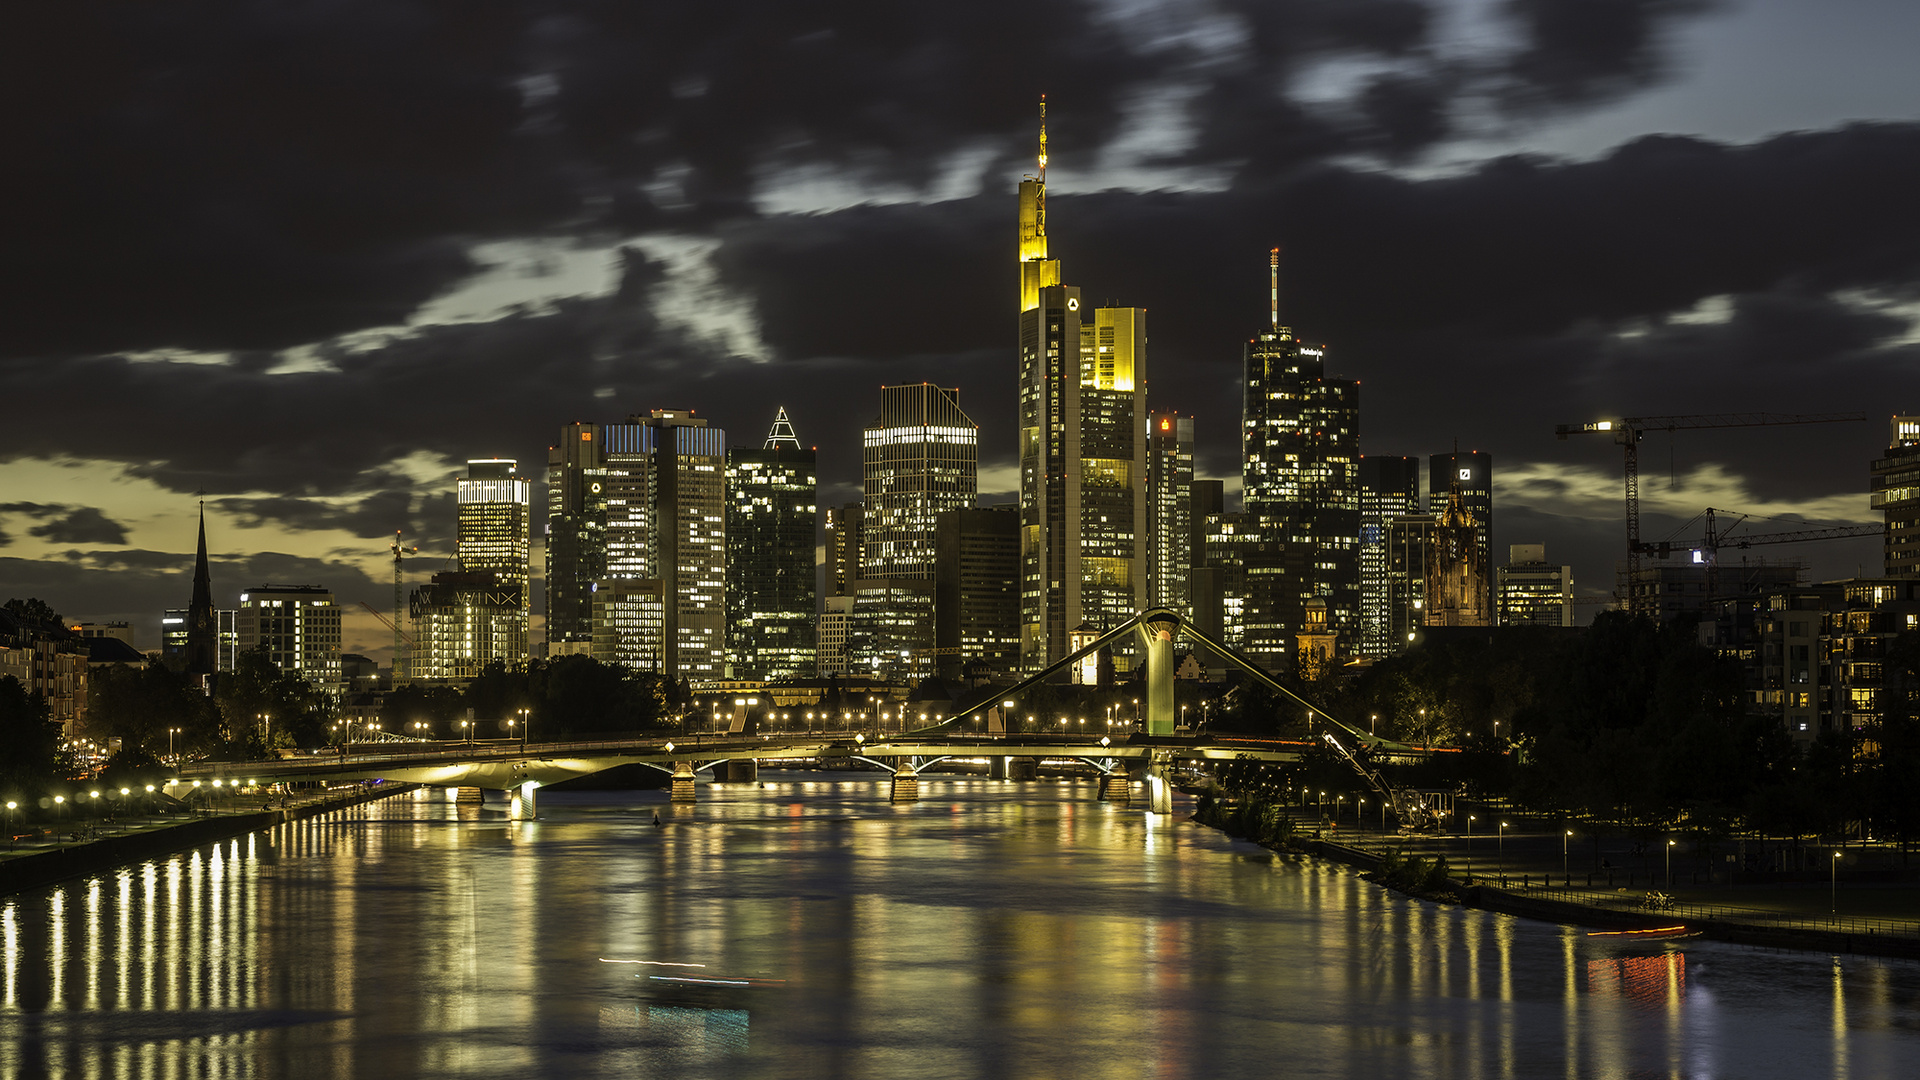 frankfurt skyline bei nacht foto bild world nacht abend bilder auf fotocommunity. Black Bedroom Furniture Sets. Home Design Ideas